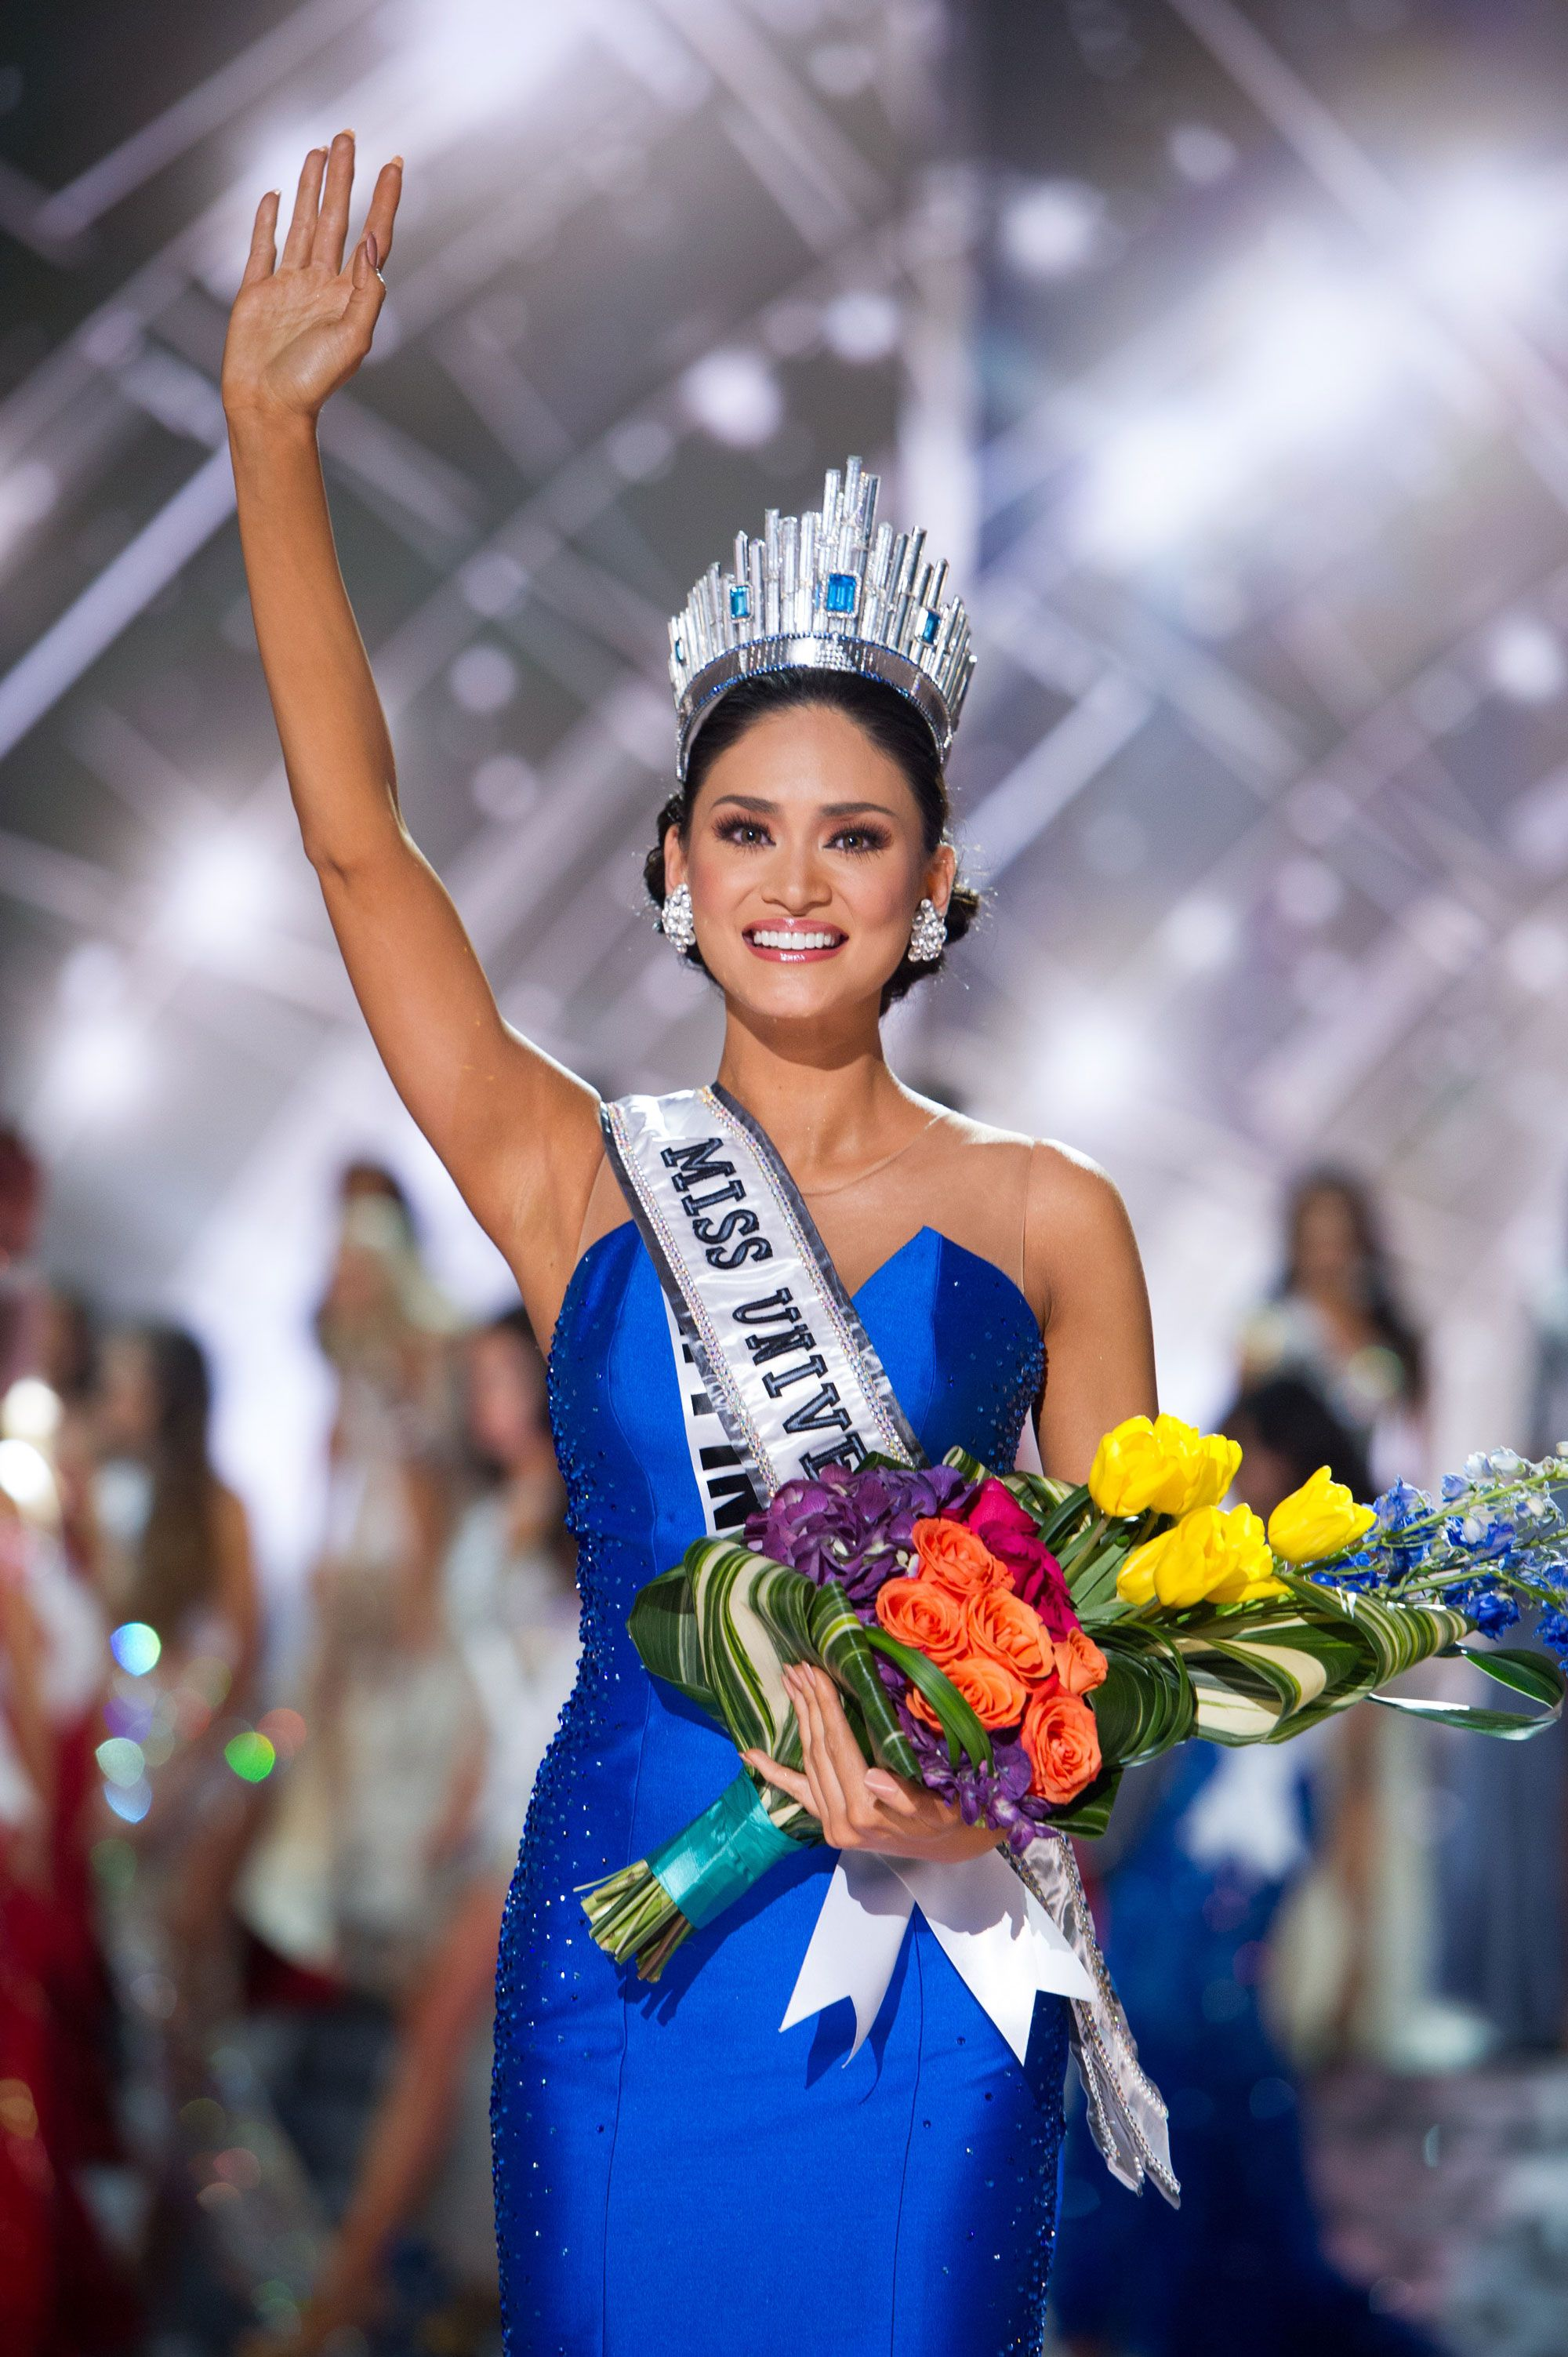 How Pia Alonzo Wurtzbach Became Miss Universe